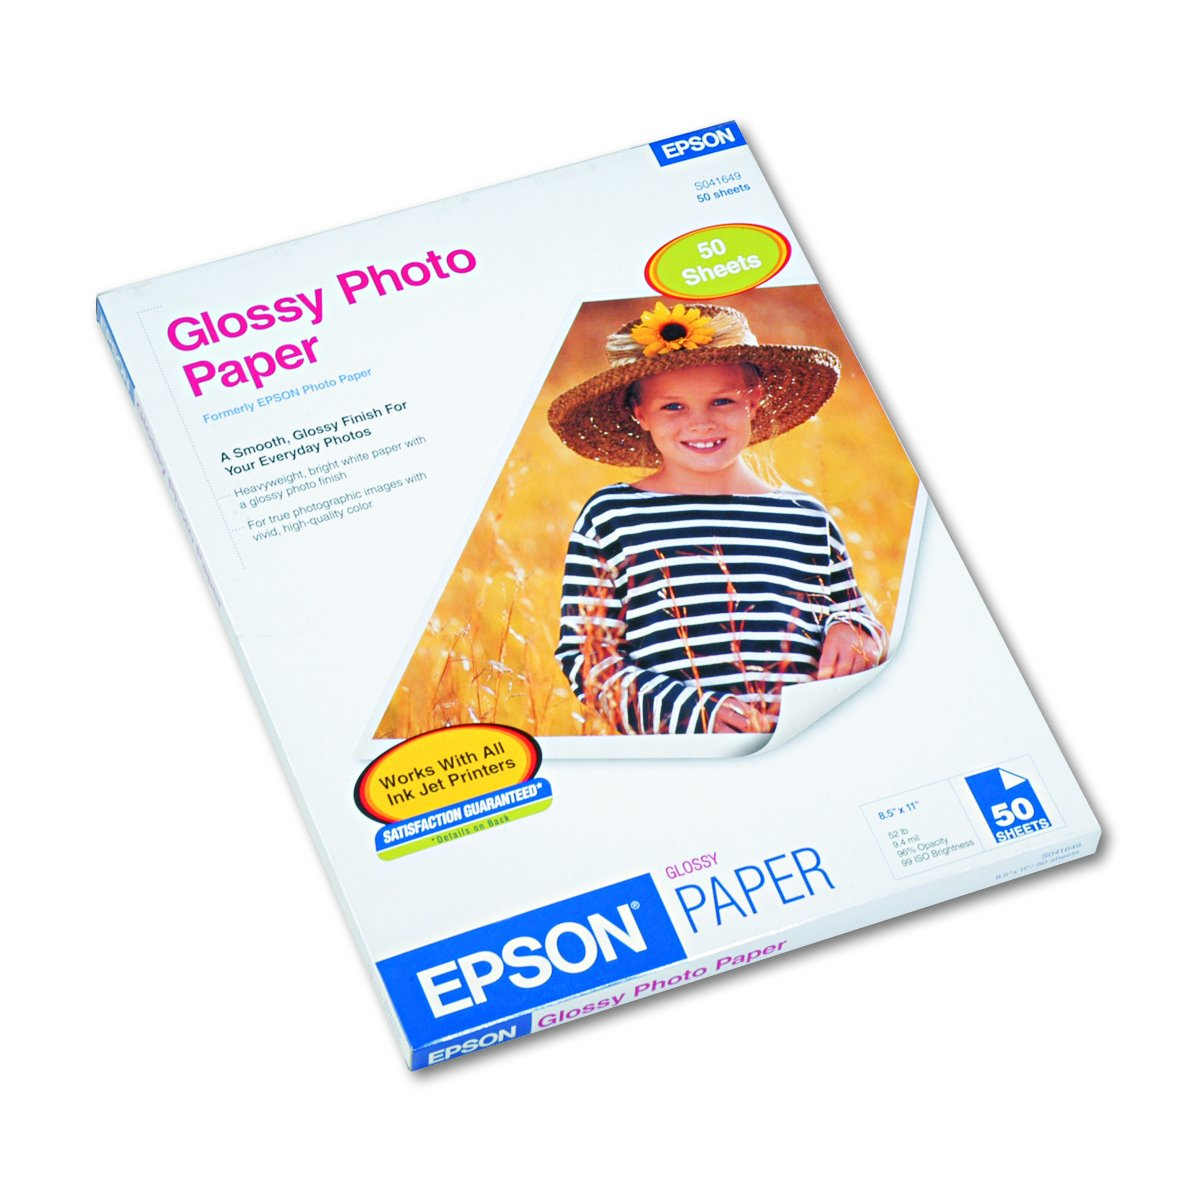 Epson S041649 Glossy Photo Paper, 52 lbs., Glossy, 8-1/2 x 11 (Pack of 50 Sheets)